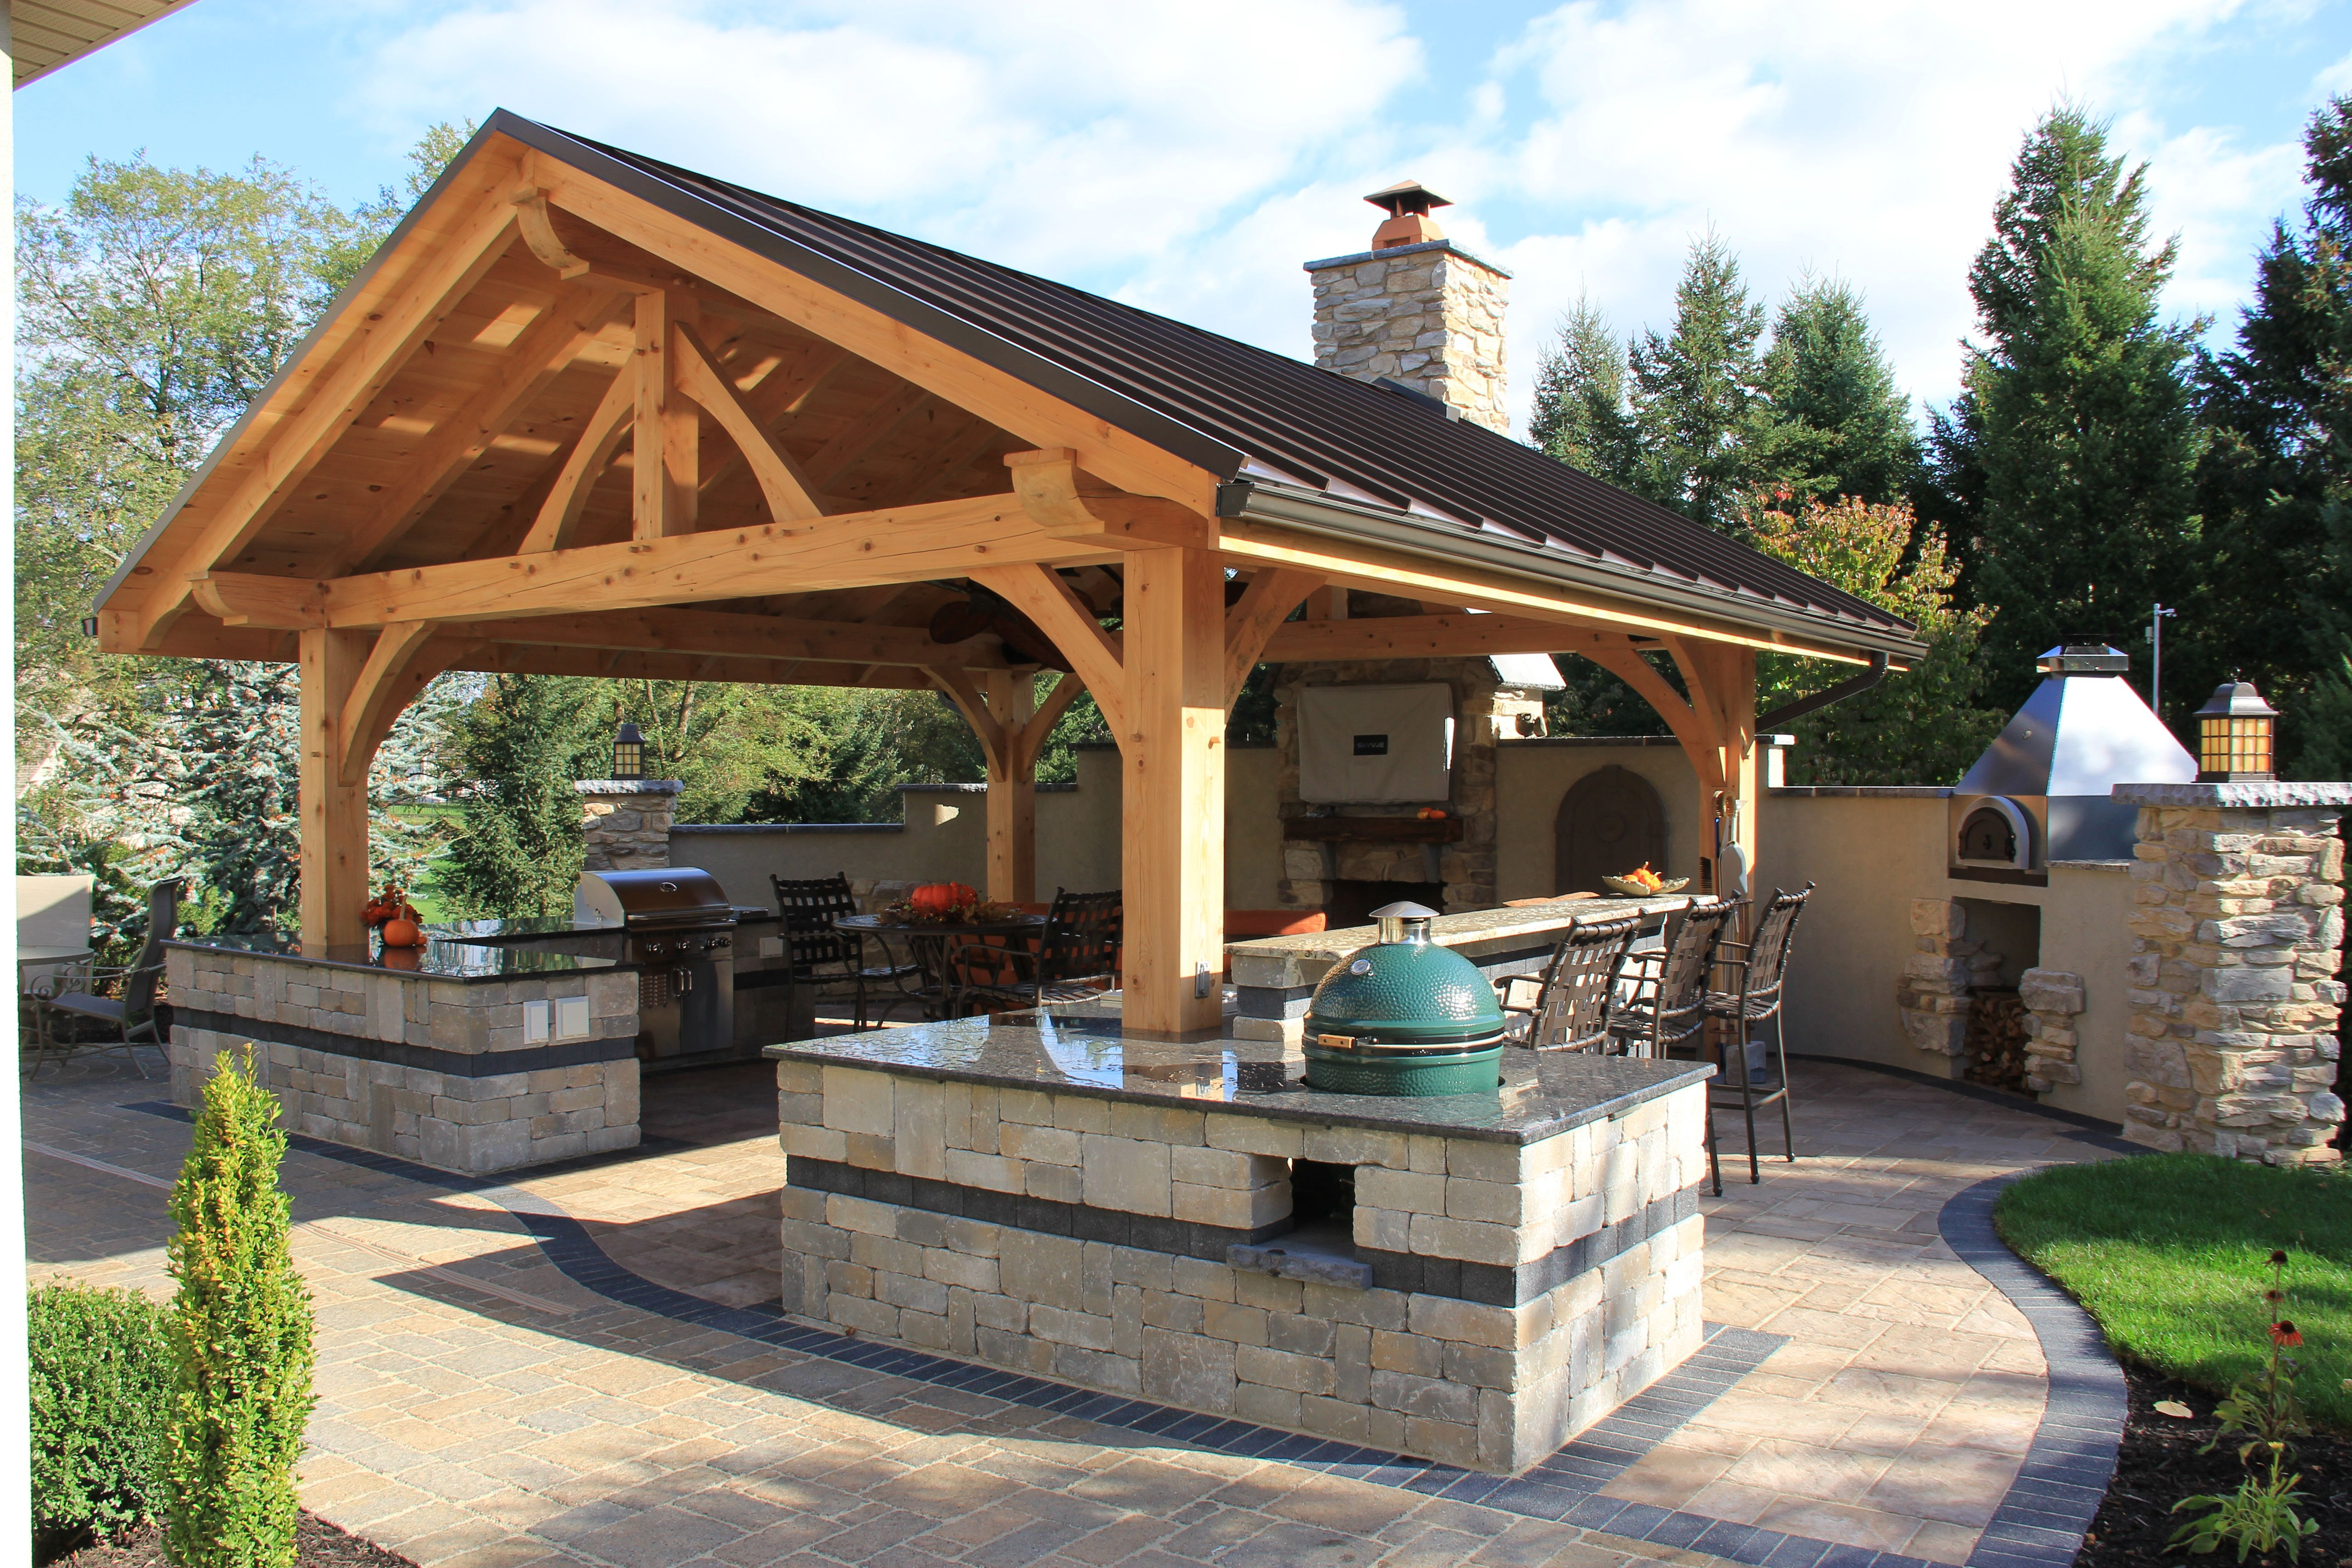 Pool patios ideas covered patio with outdoor kitchen covered patio - Best Ideas Ci Mid Atlantic Timber Frames Outdoor Kitchens With Bars Jpg Rend